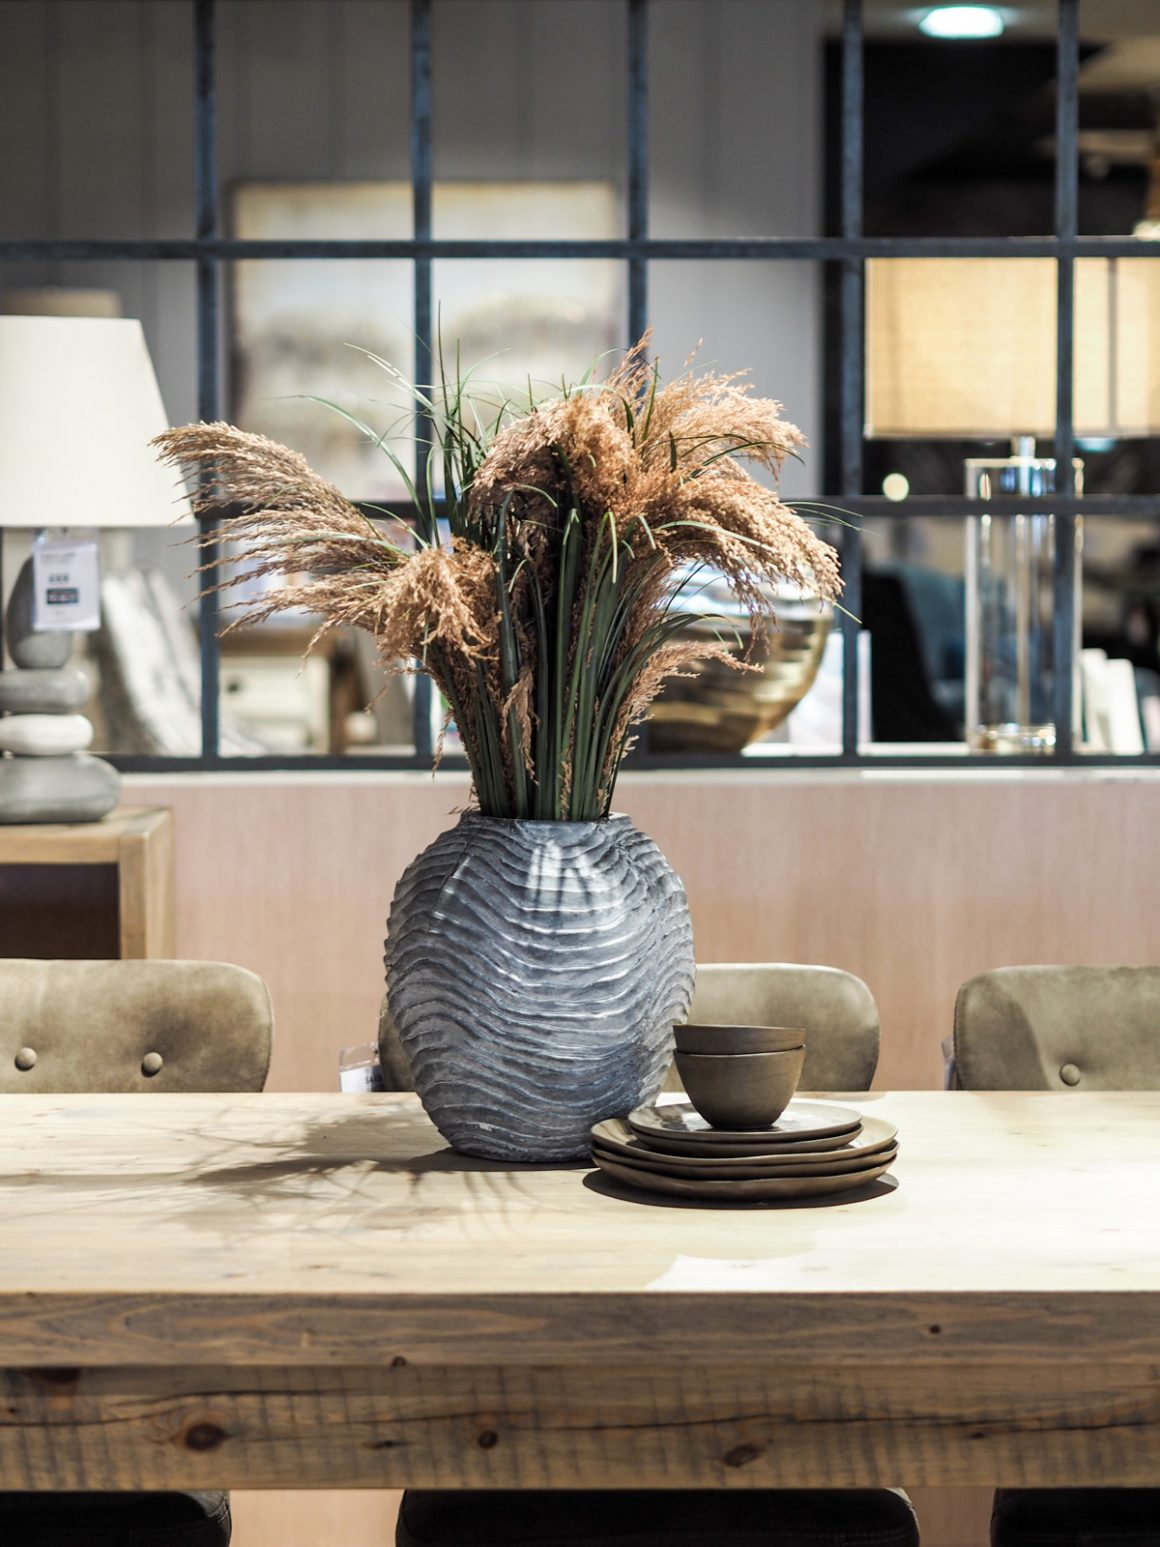 Accessories from Barker and Stonehouse in Leeds